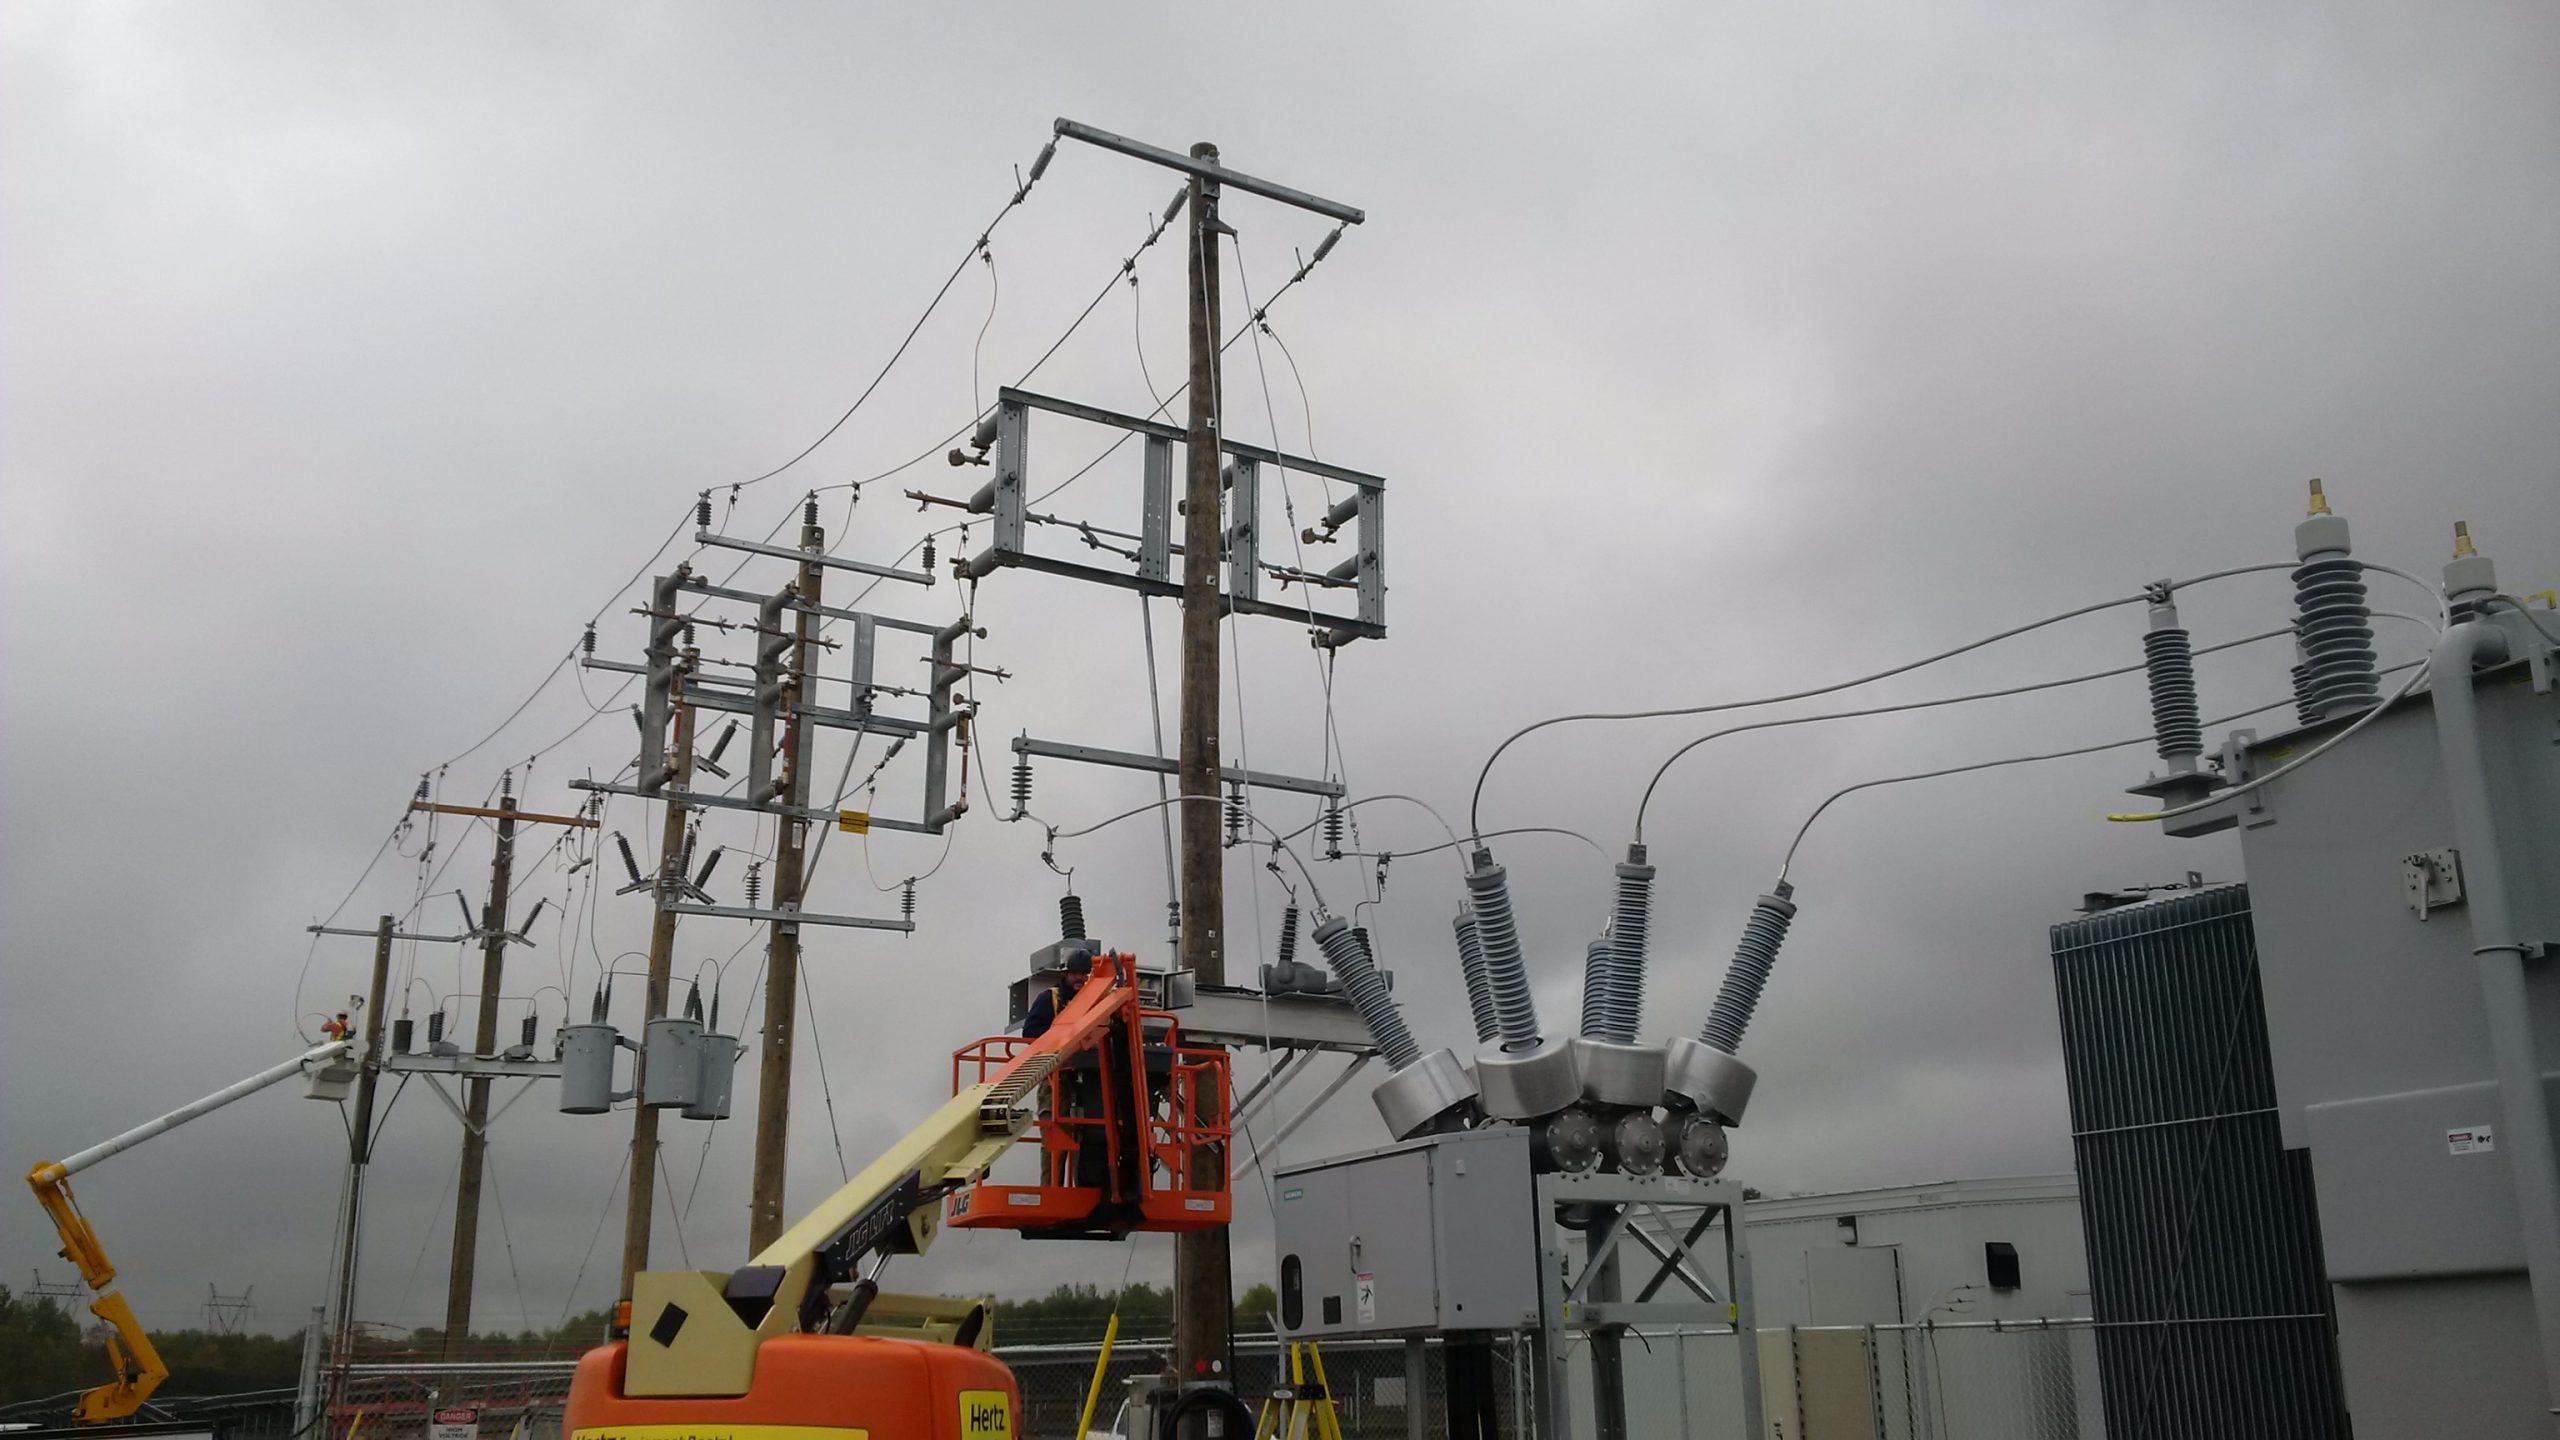 Two linesmen work from articulating man-lift in rear and telescopic boom man-lift front connecting transmission lines to HONI grid